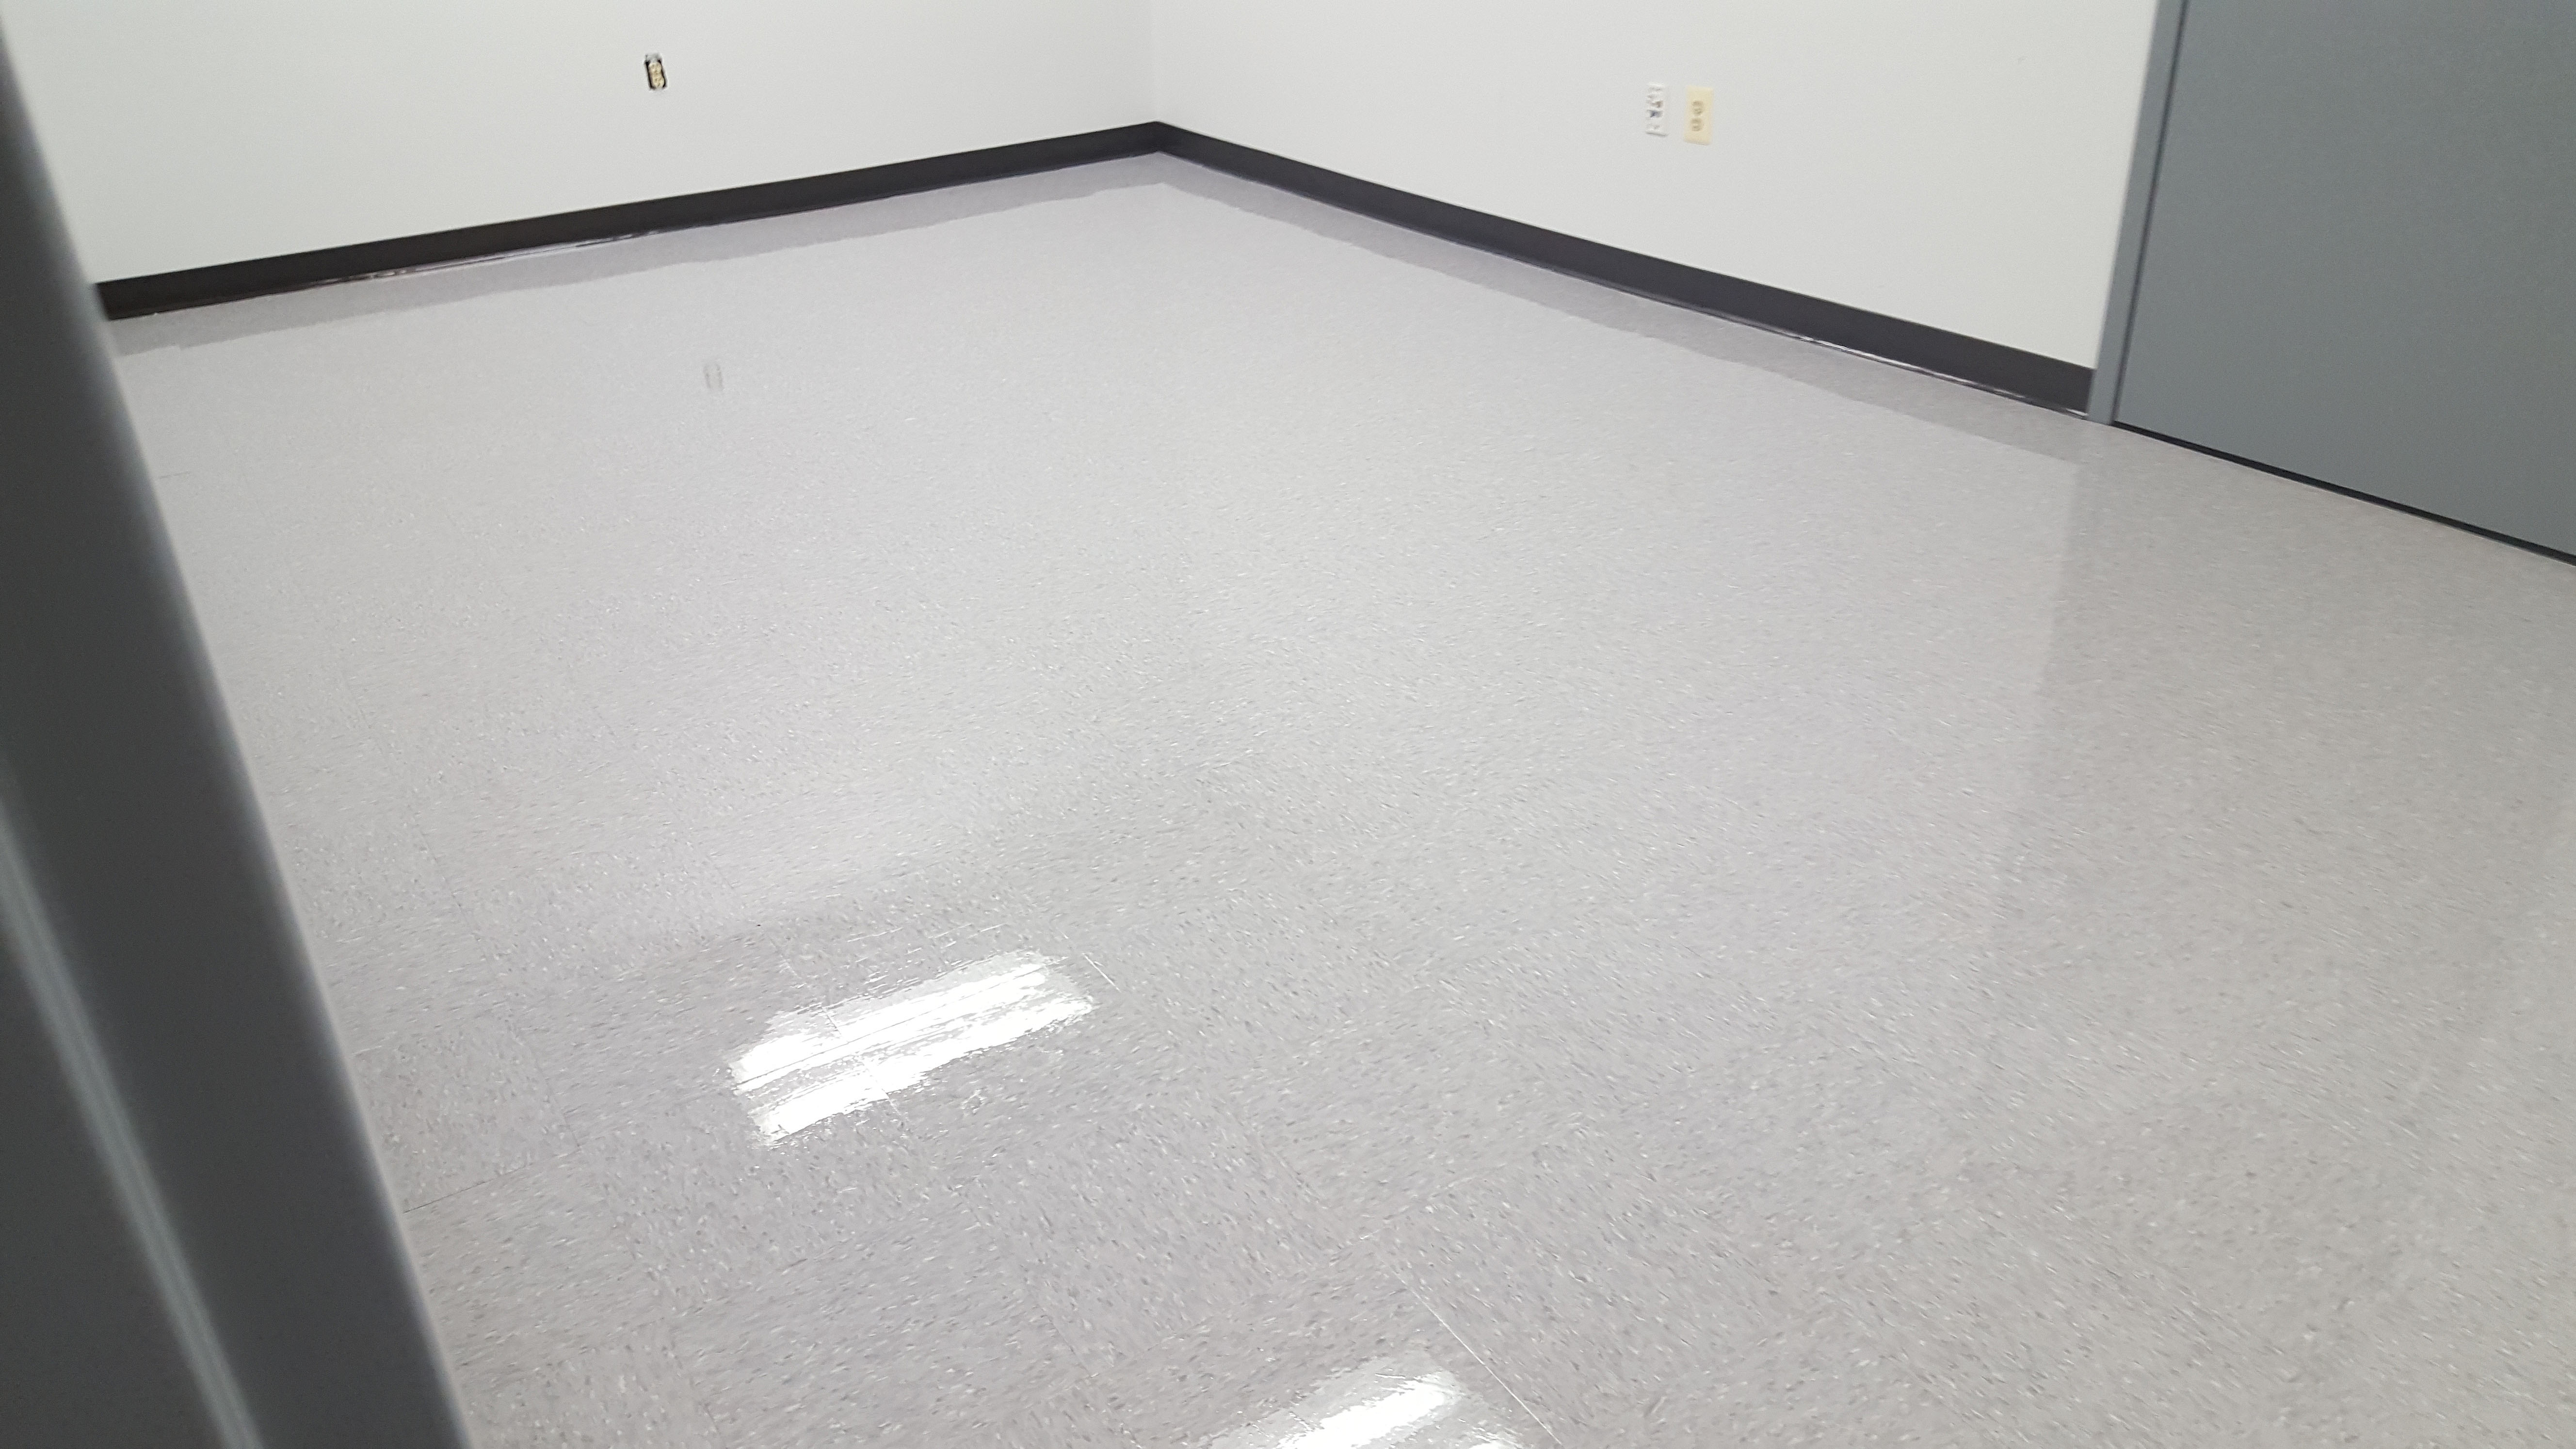 Floor Cleaning and Janitorial Services